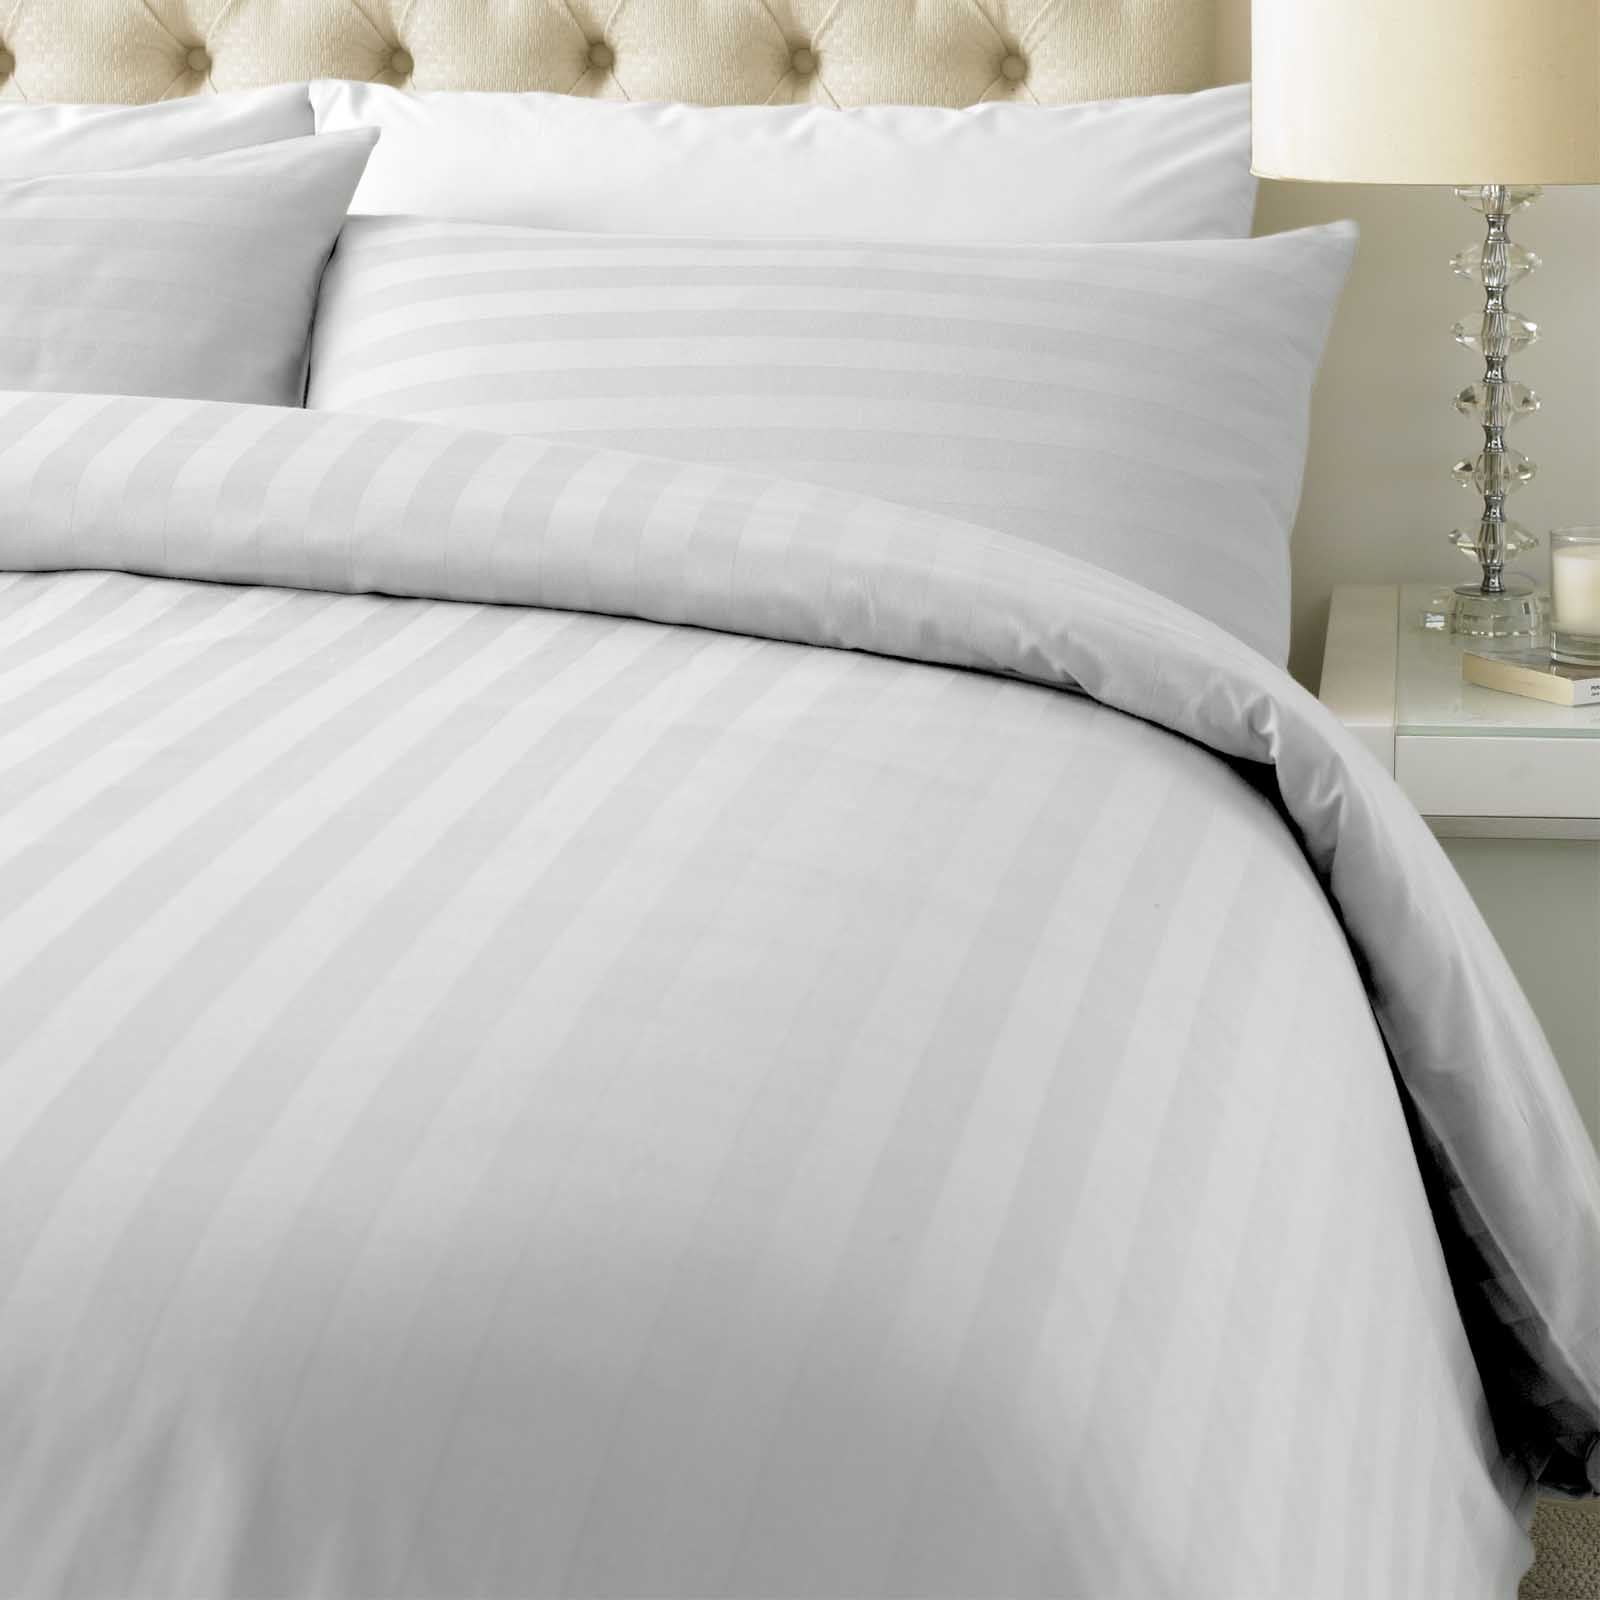 Luxury 800 thread count duvet cover with pillowcase cotton for Luxury hotel 750 collection sheets